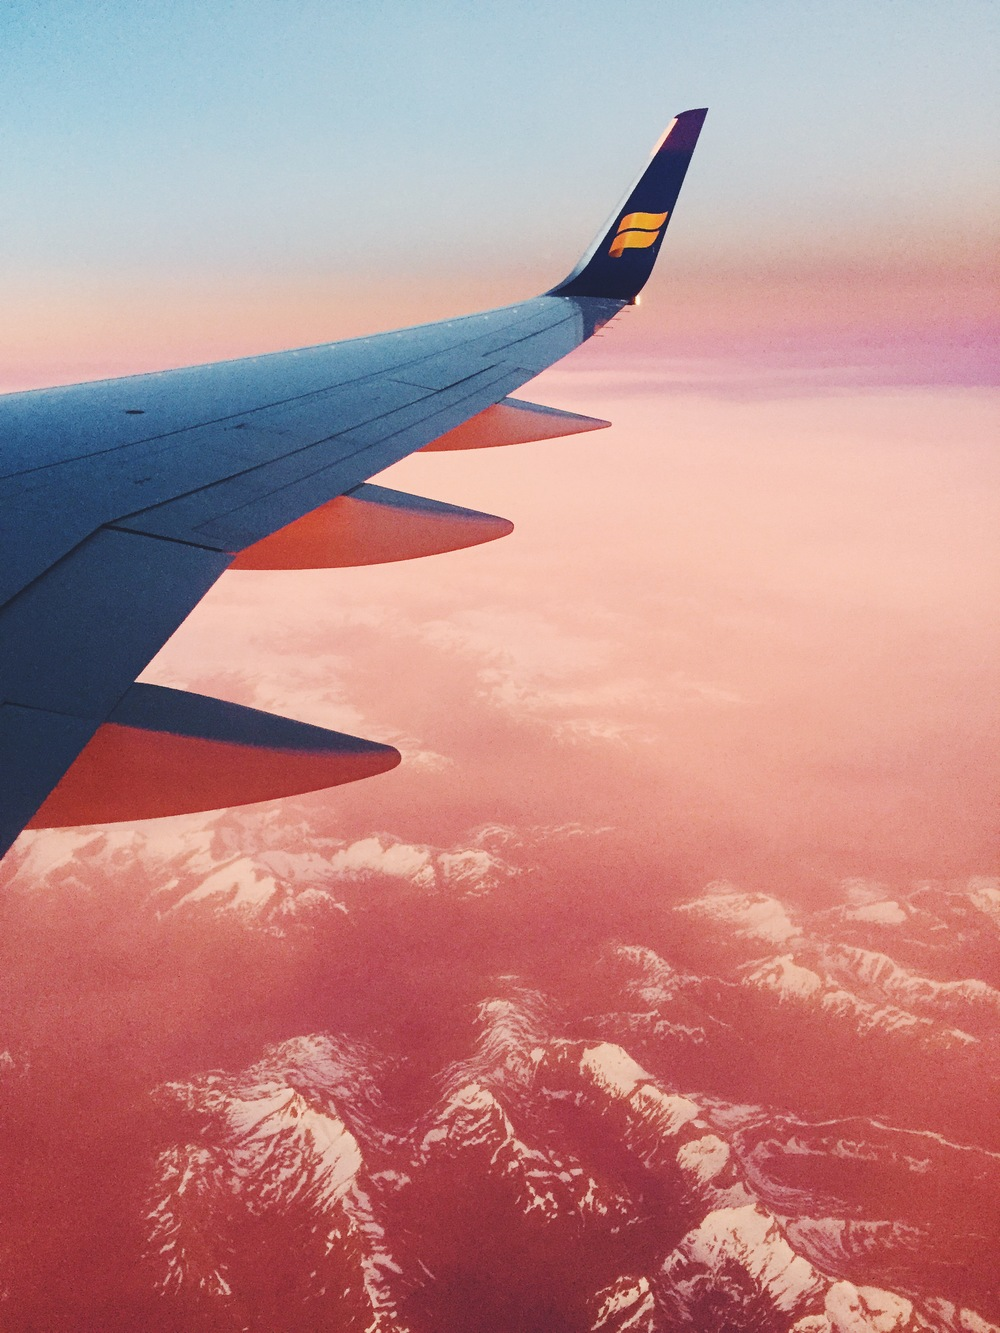 I woke up from a nap on my flight from Iceland to Sweden to the sun rising. The sun was on the other side of the plane, but it turned everything this hazy pink color. This was also my first view of Sweden.